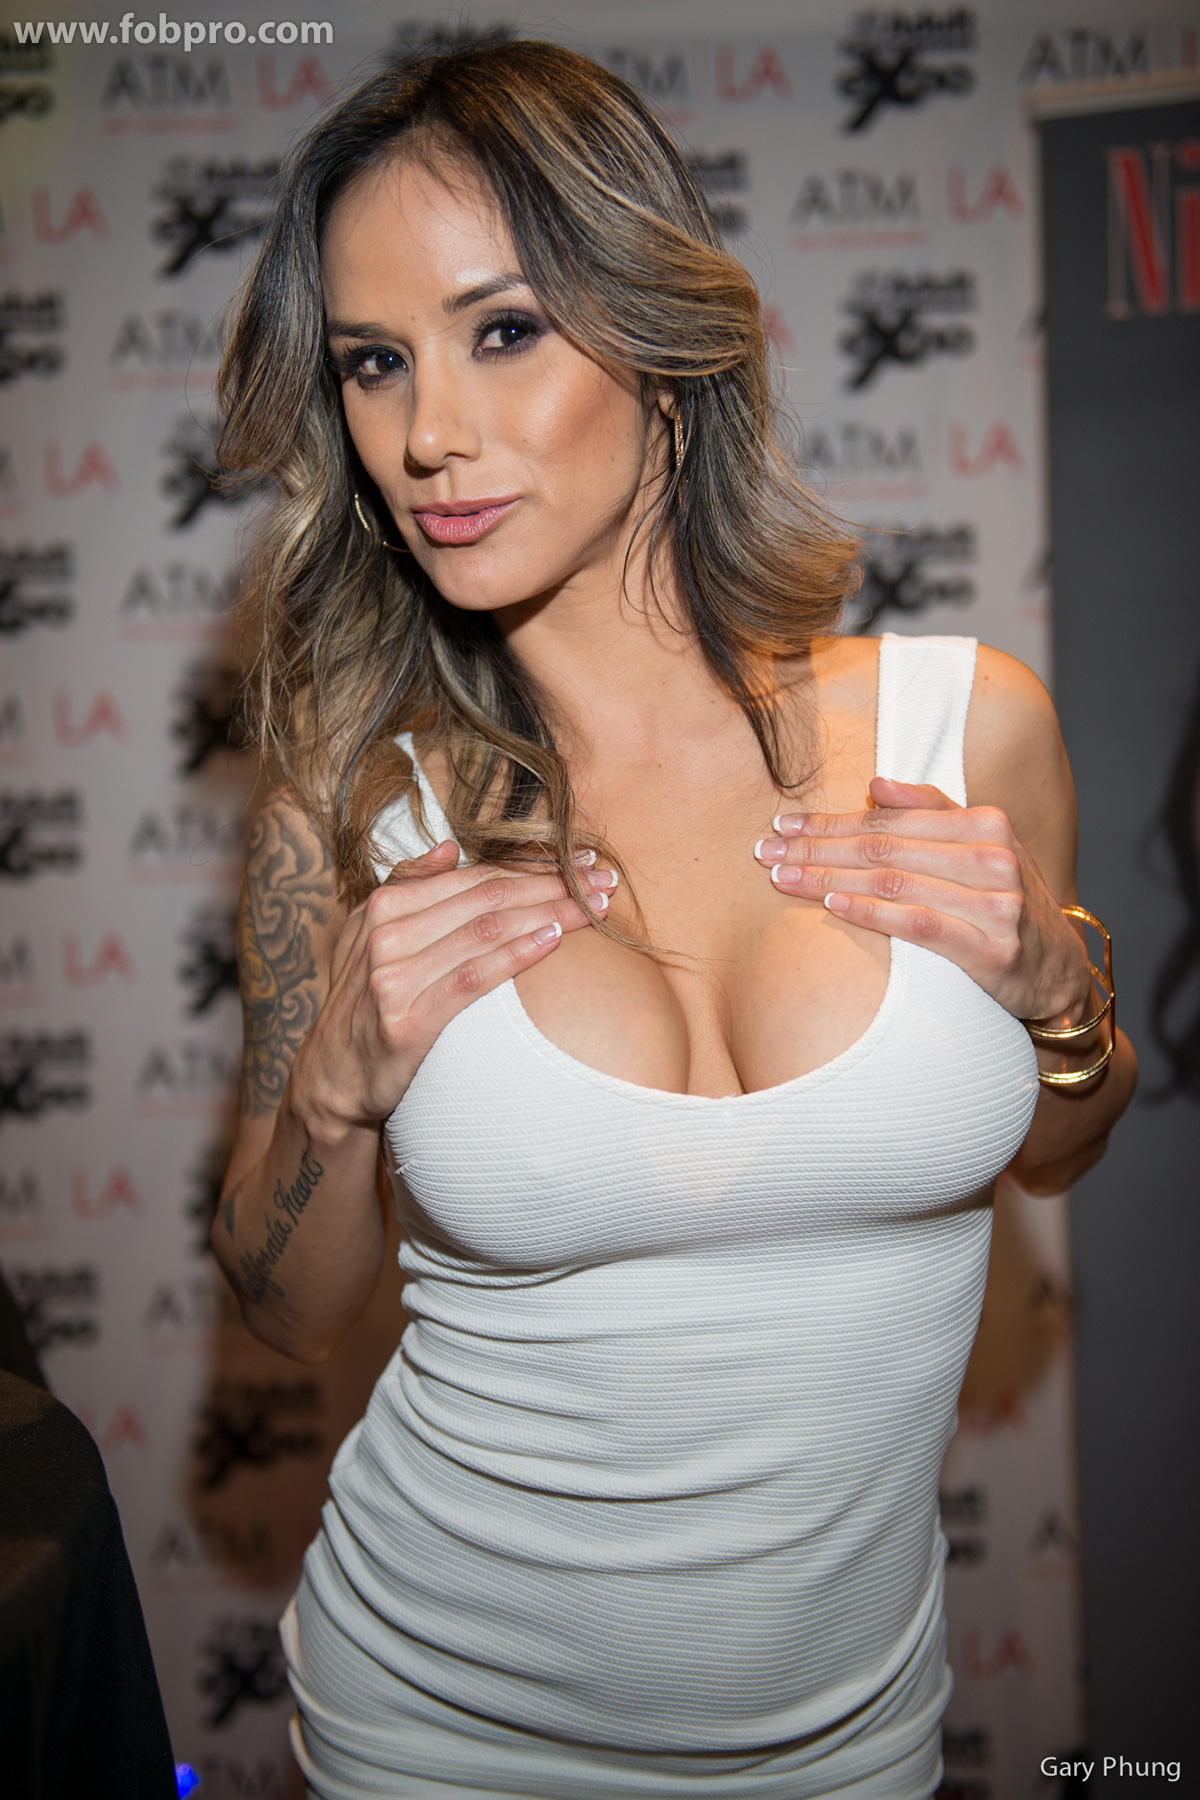 AVN Adult Entertainment Expo 2015 Day 3 (Page 7 of 24